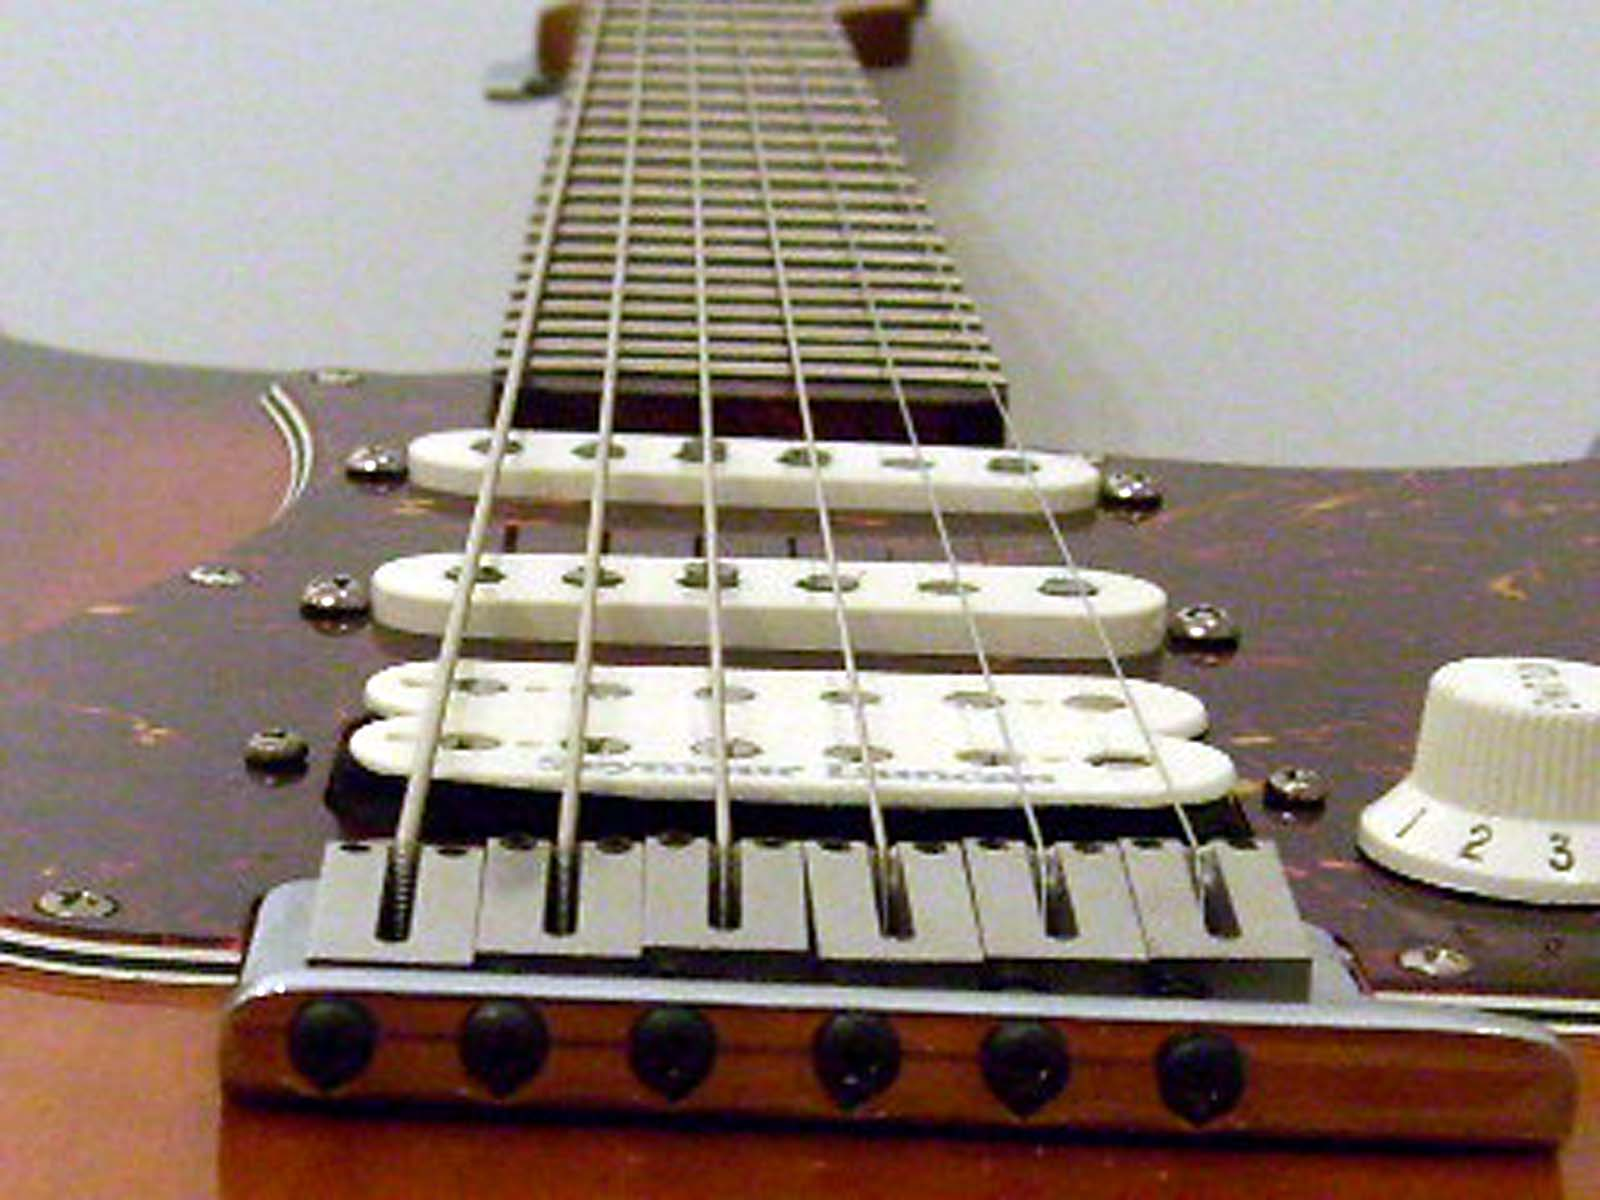 Retrofit flat fretboard neck, custom made for USA STRAT